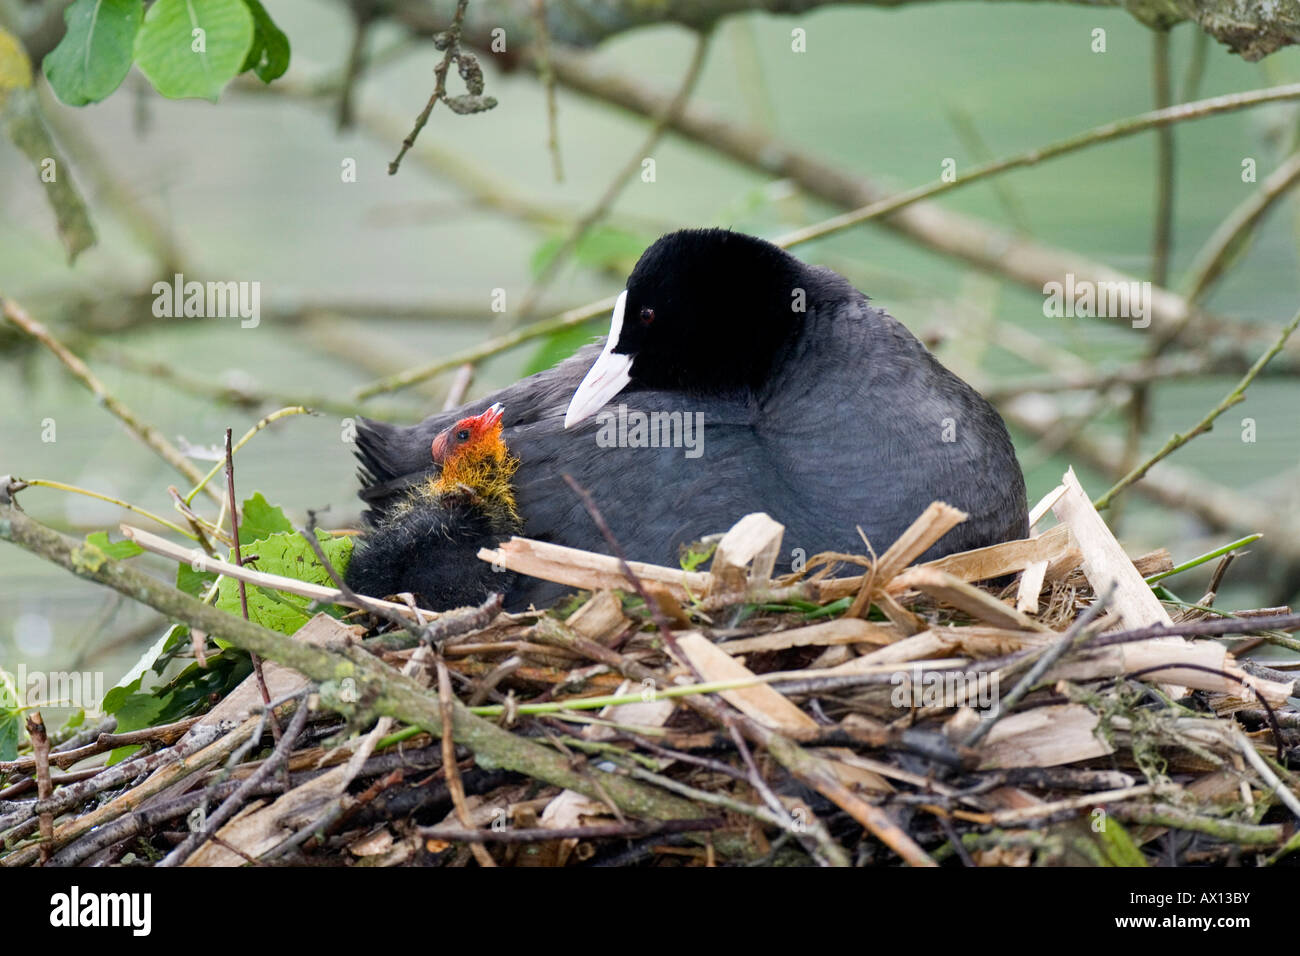 Eurasian Coot (Fulica atra) with chick sitting on the nest, Vulkaneifel, Germany Stock Photo